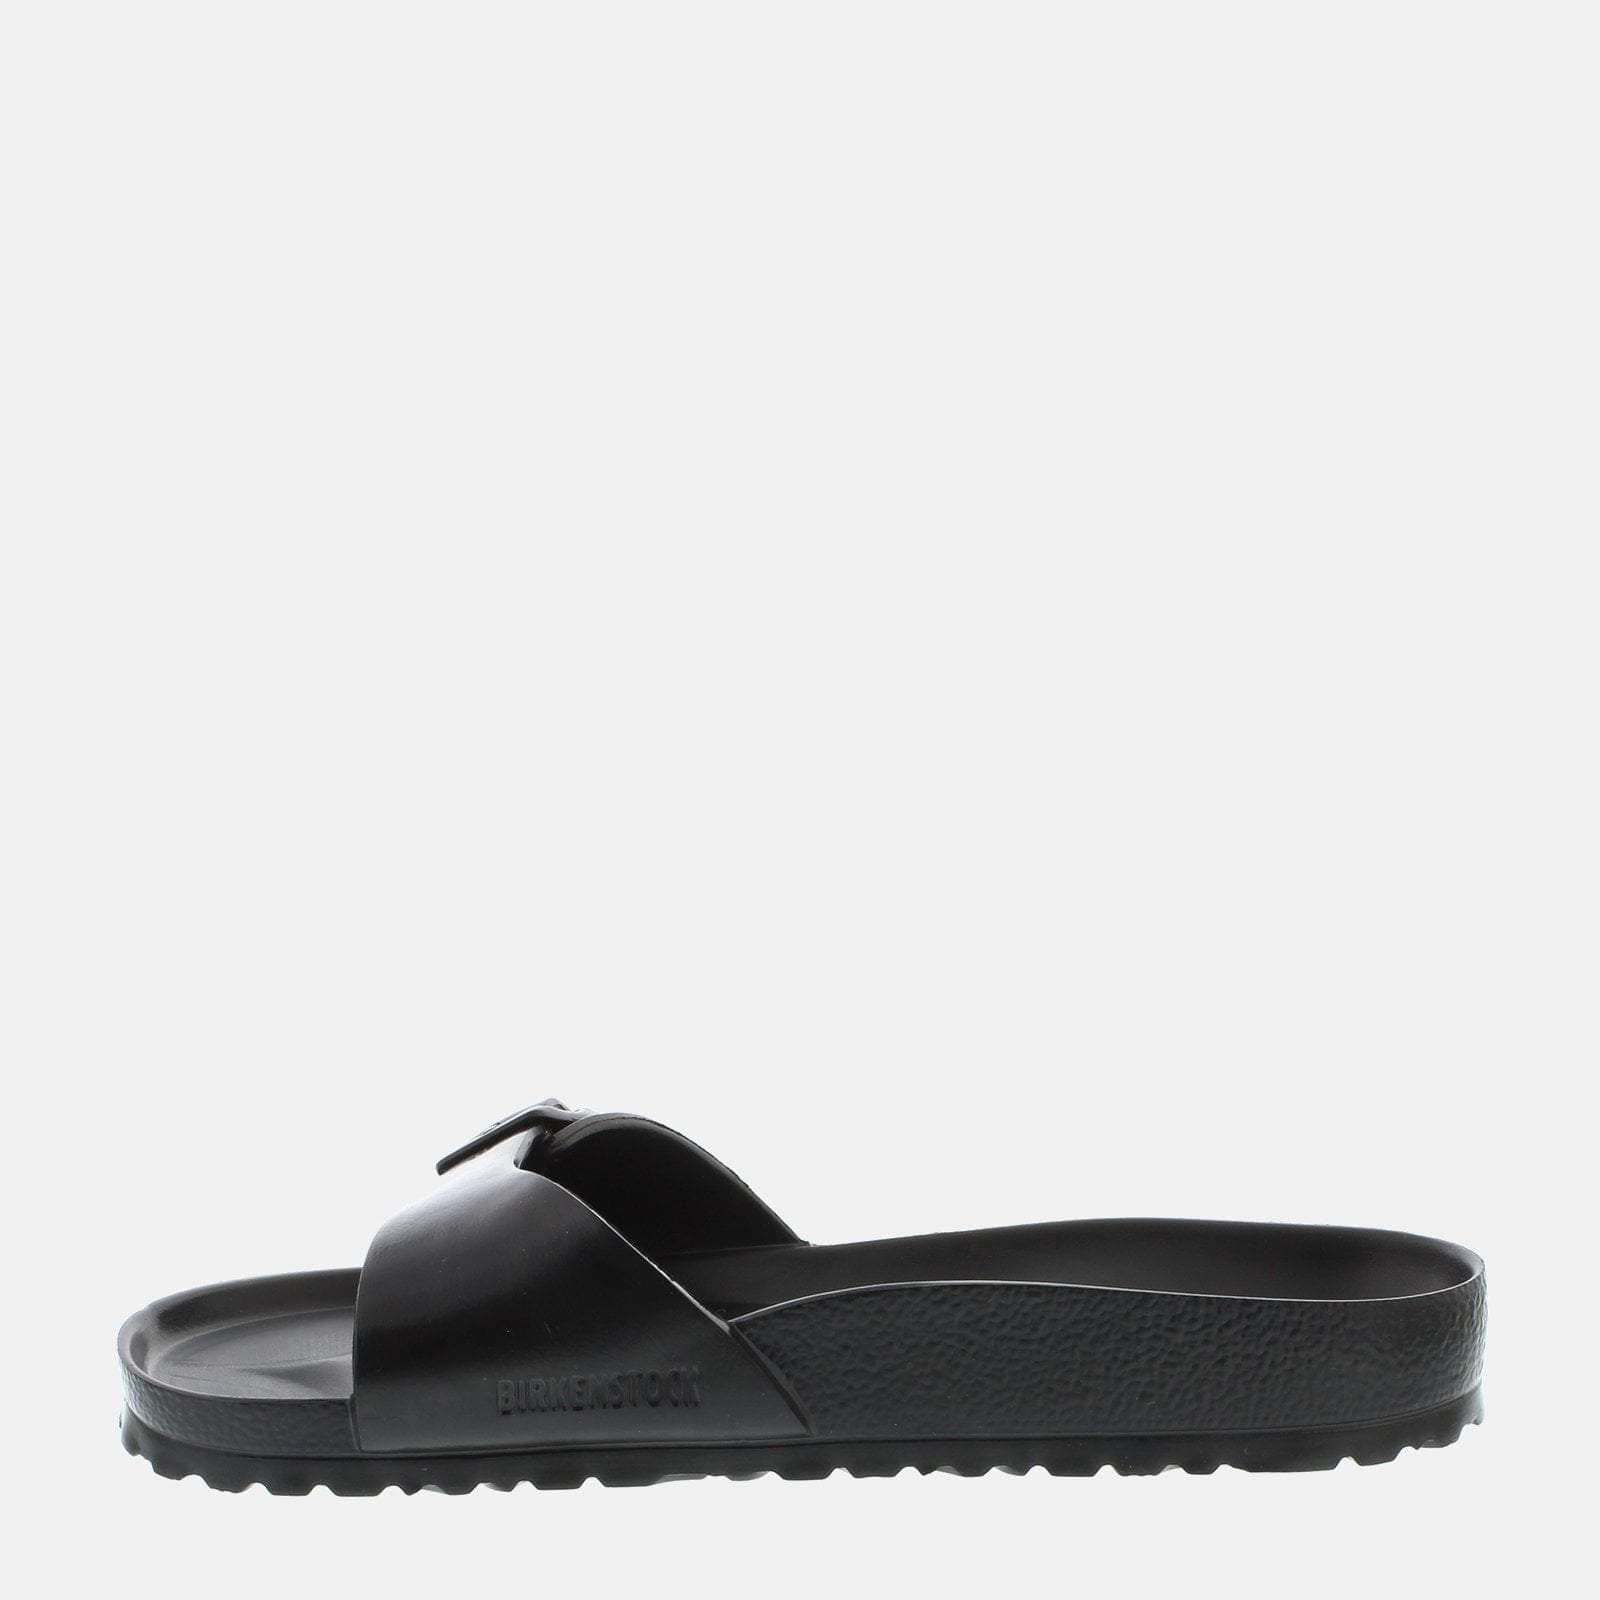 Birkenstock Footwear Madrid EVA Regular Fit Black 128161